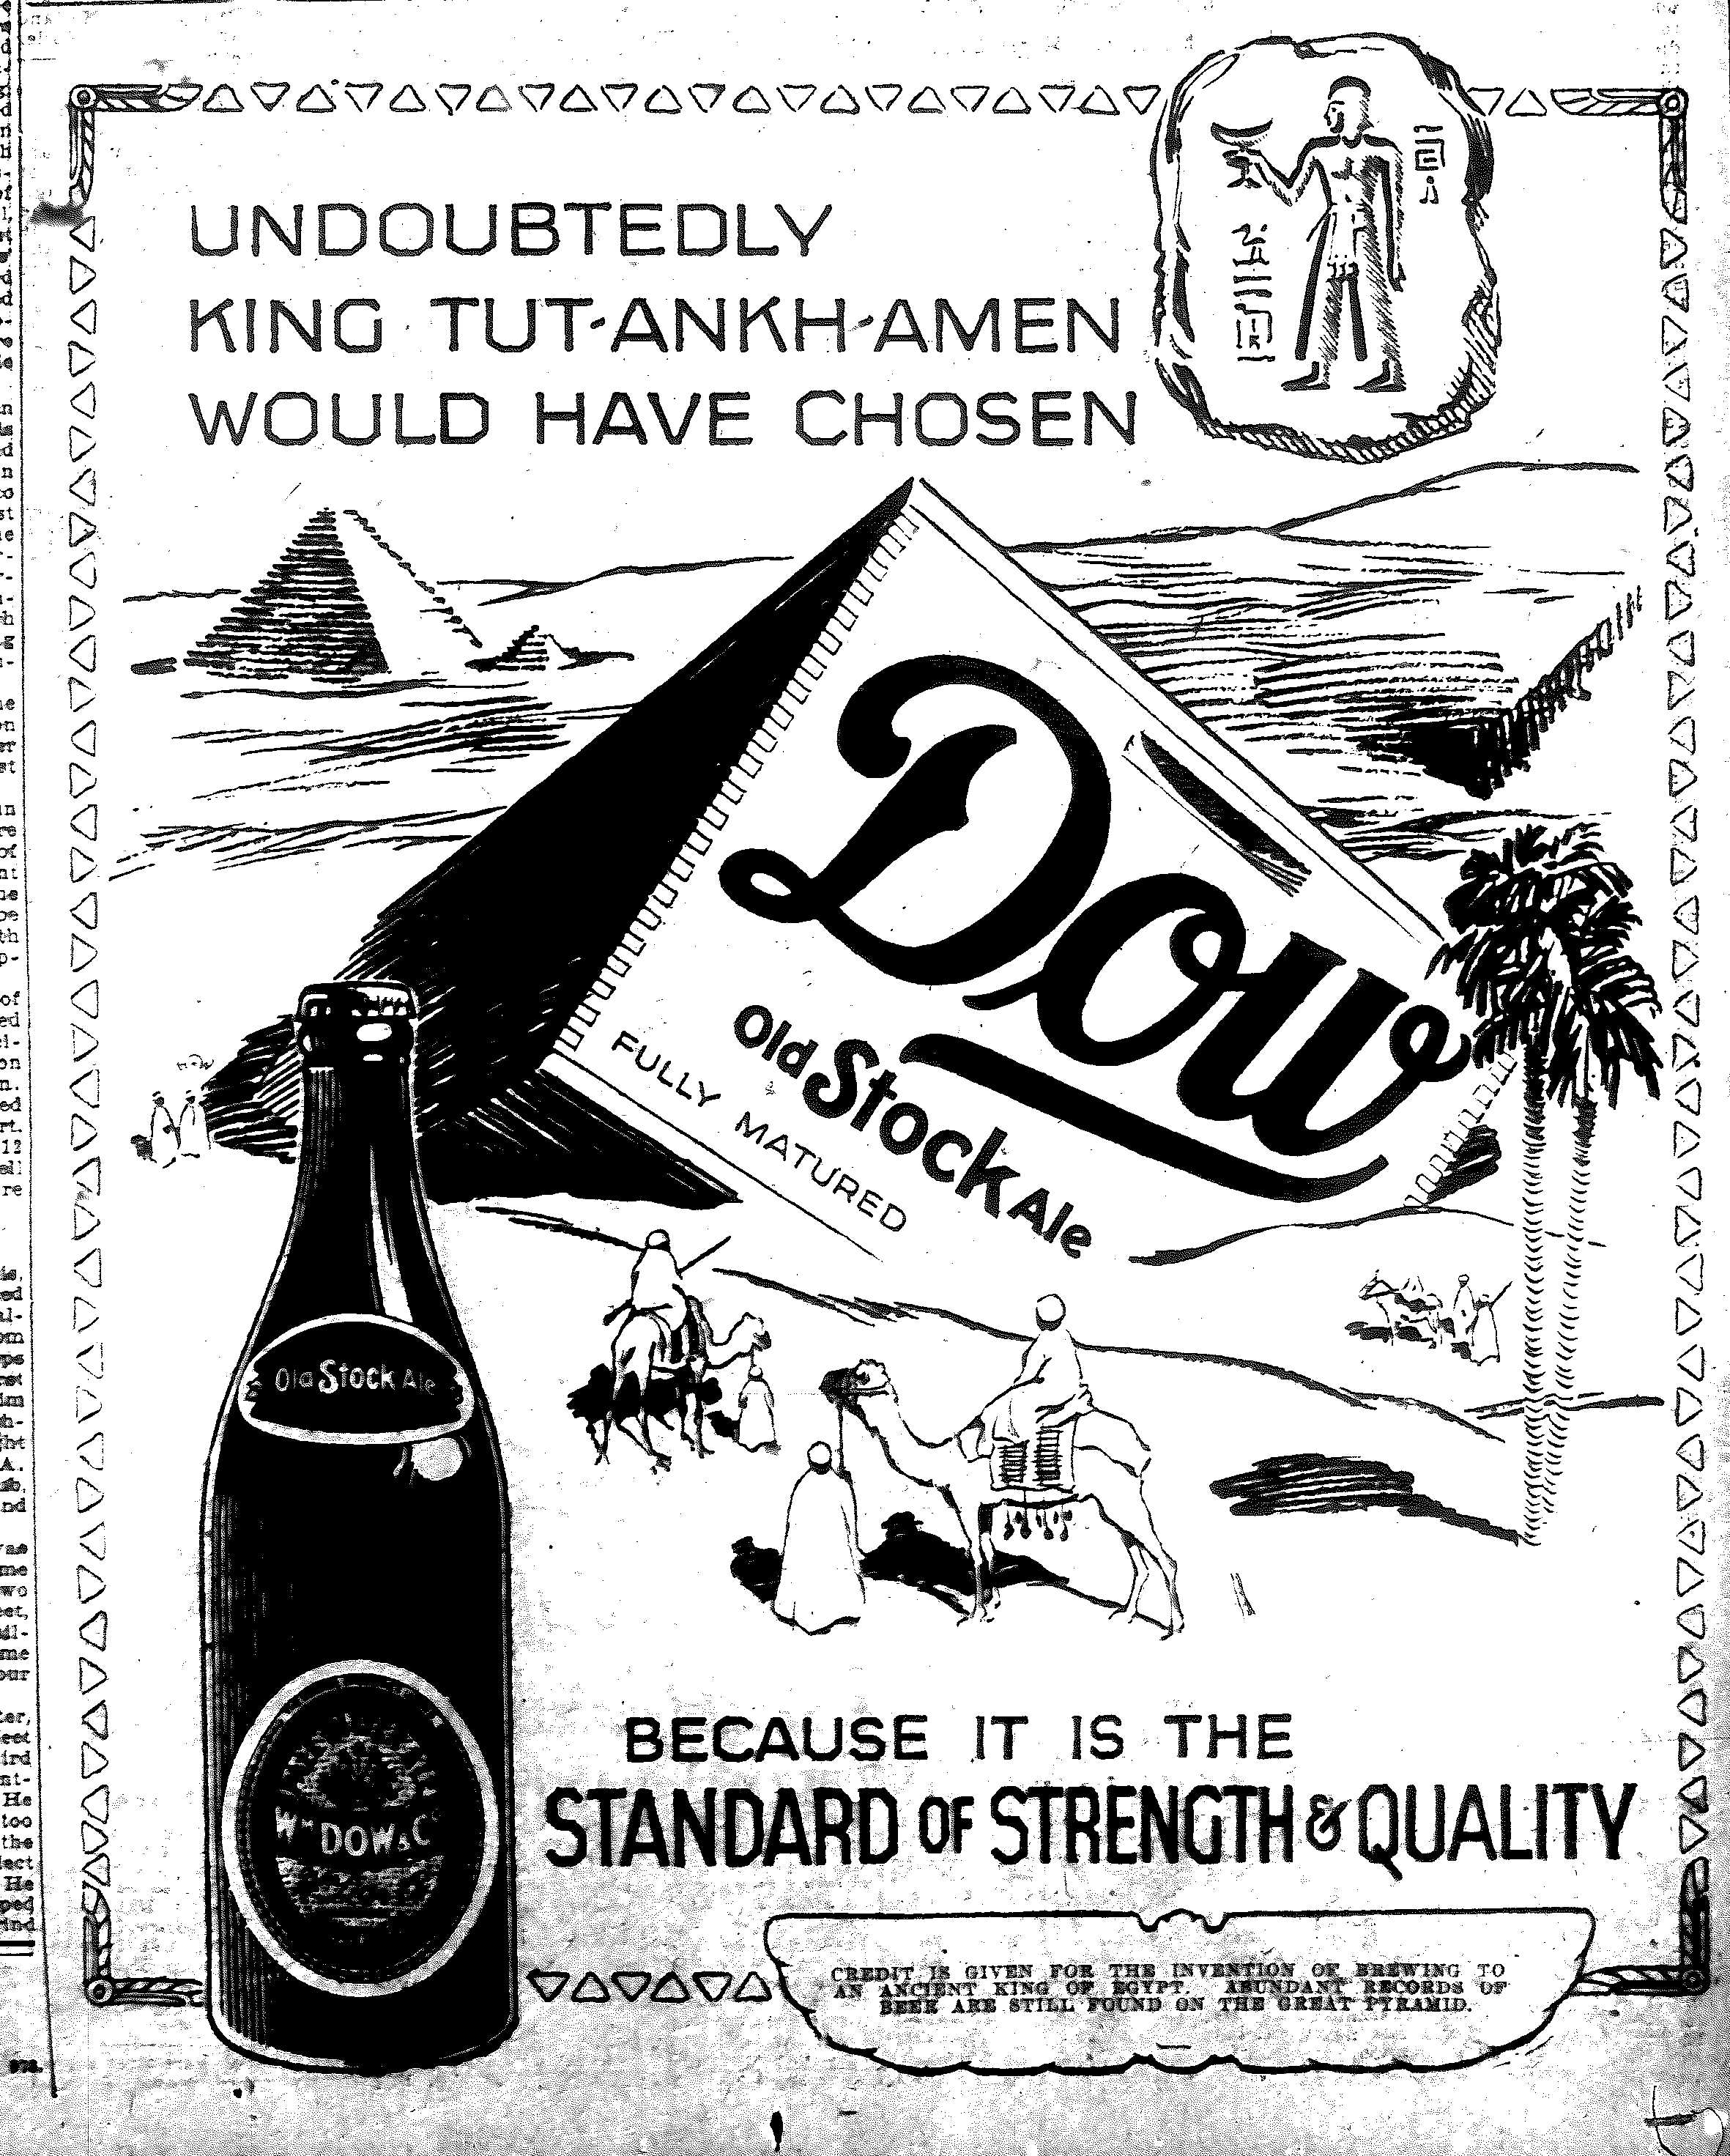 King Tut would have chose Dow Old Stock Ale, 1923